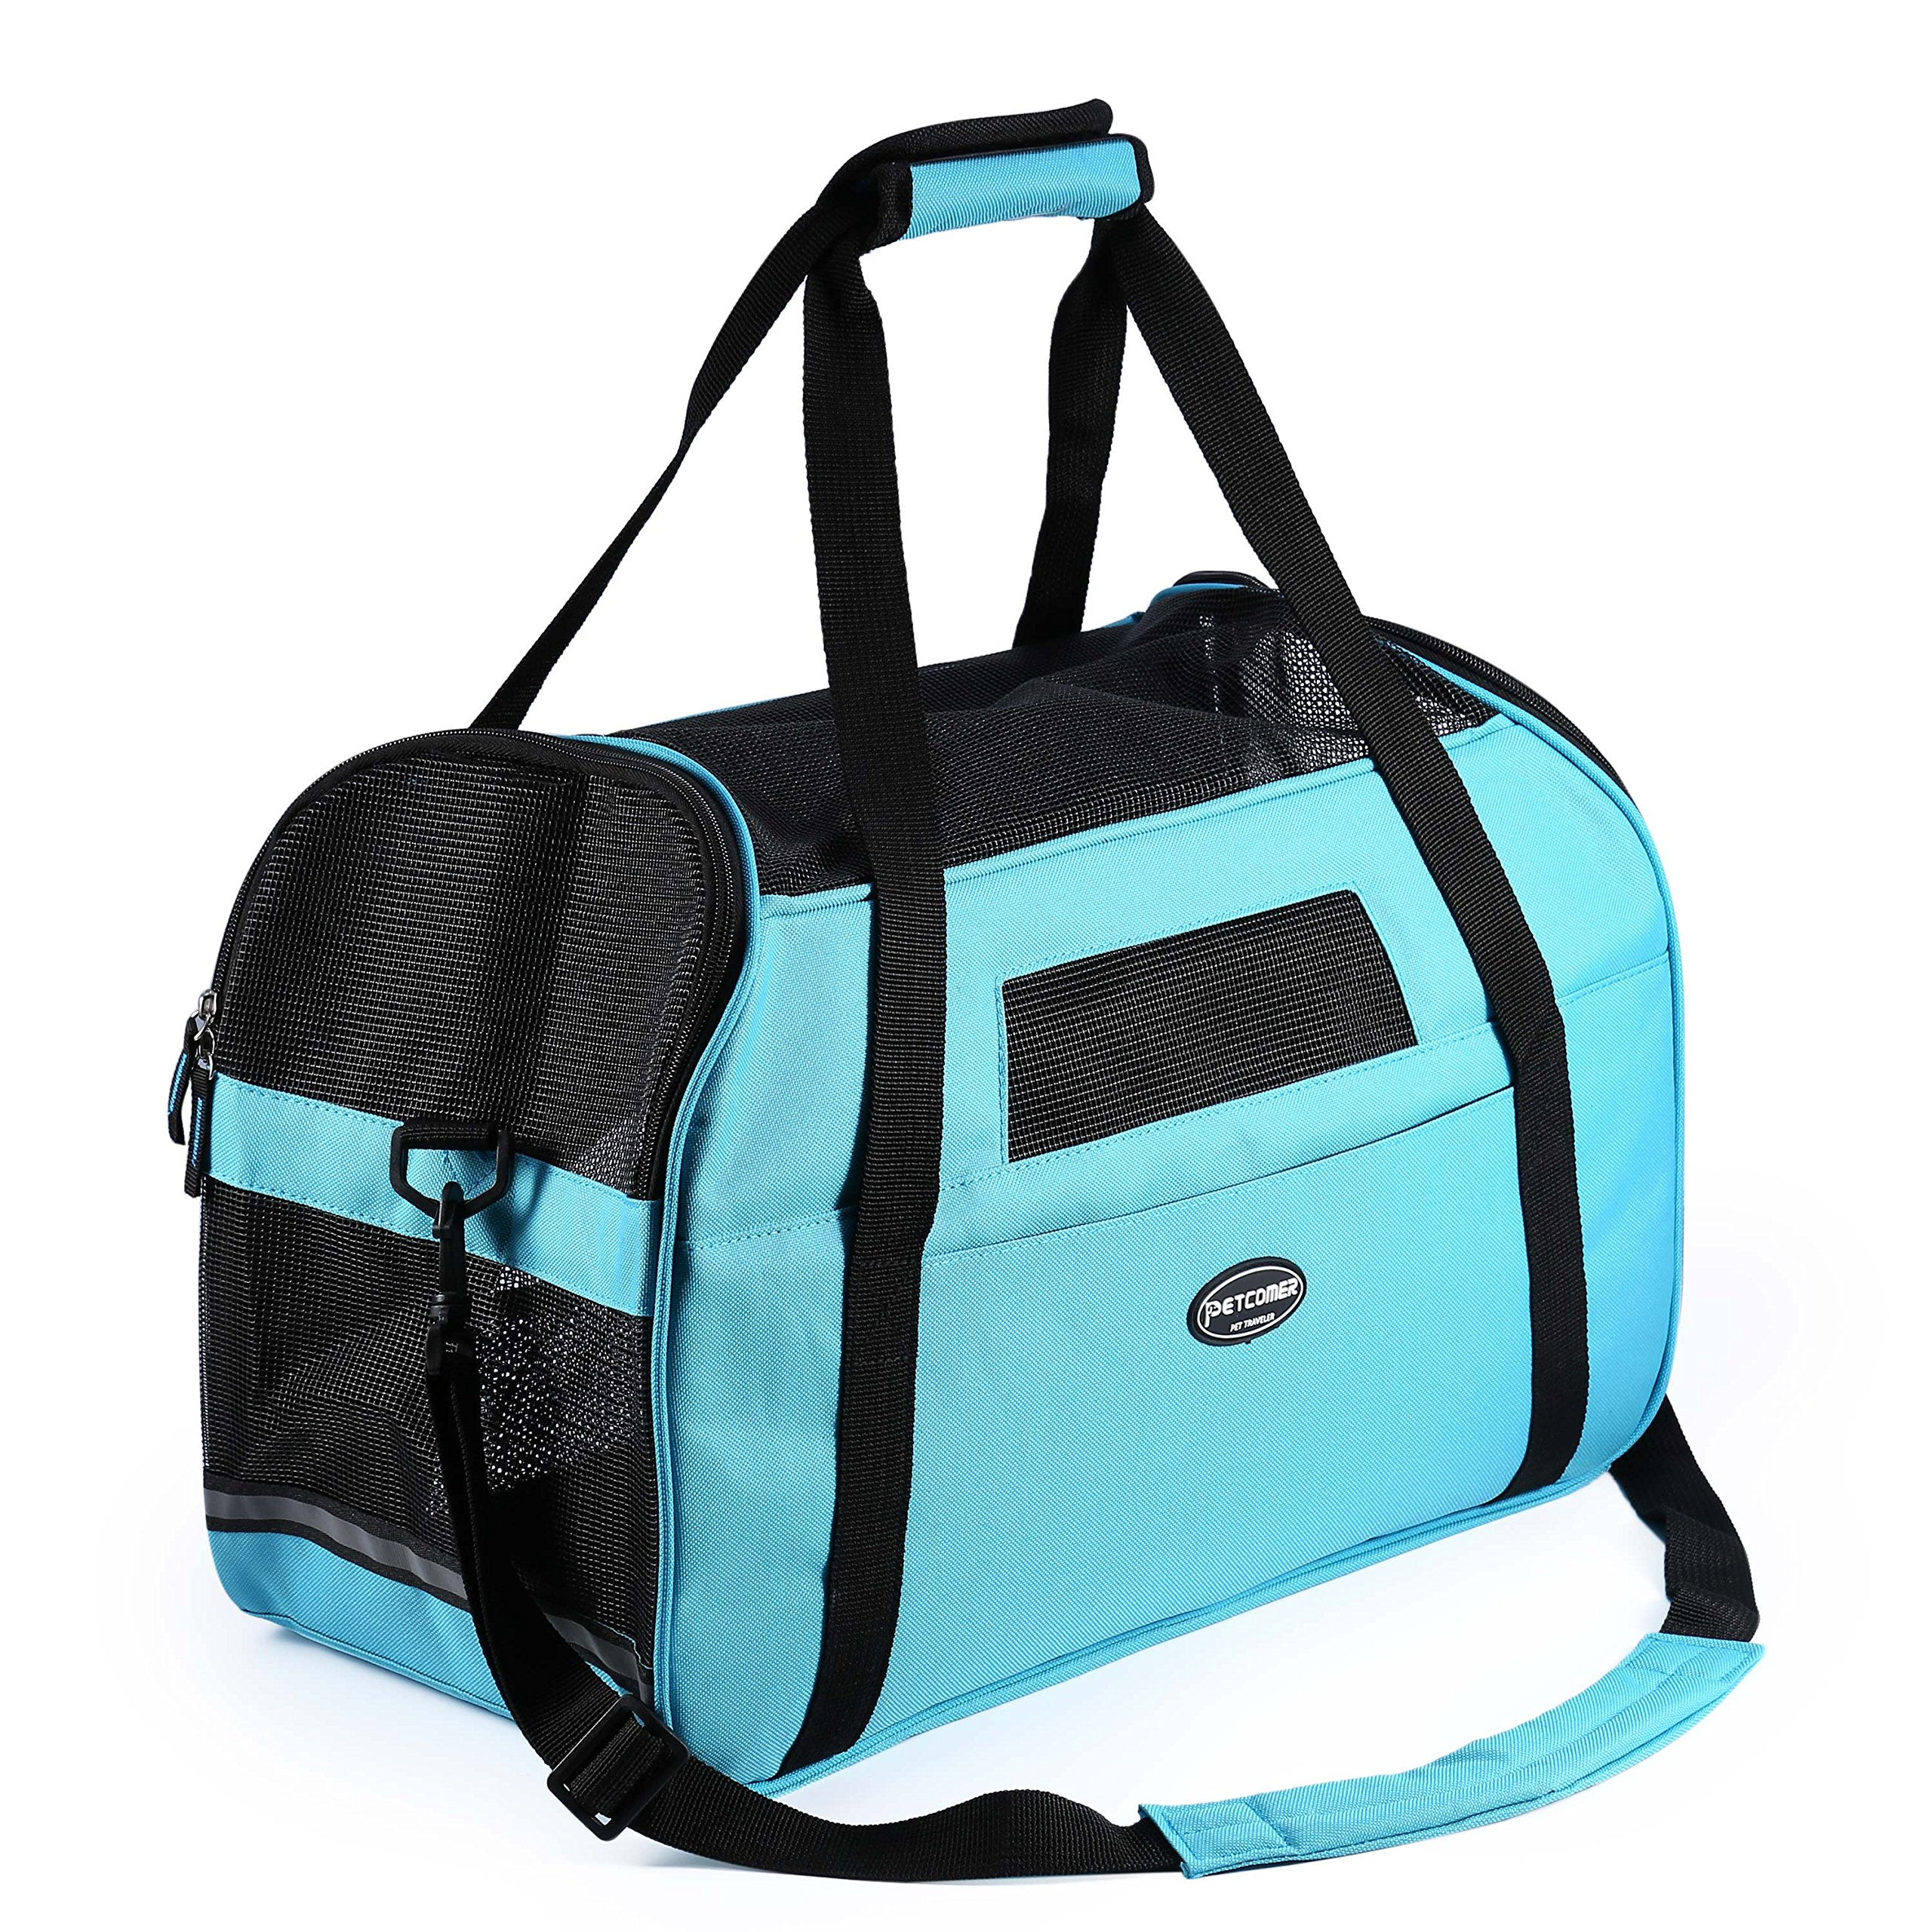 Pettom Soft-Sided Pet Carrier for Dogs Cats Travel Bag Tote Airline Approved Under Seat